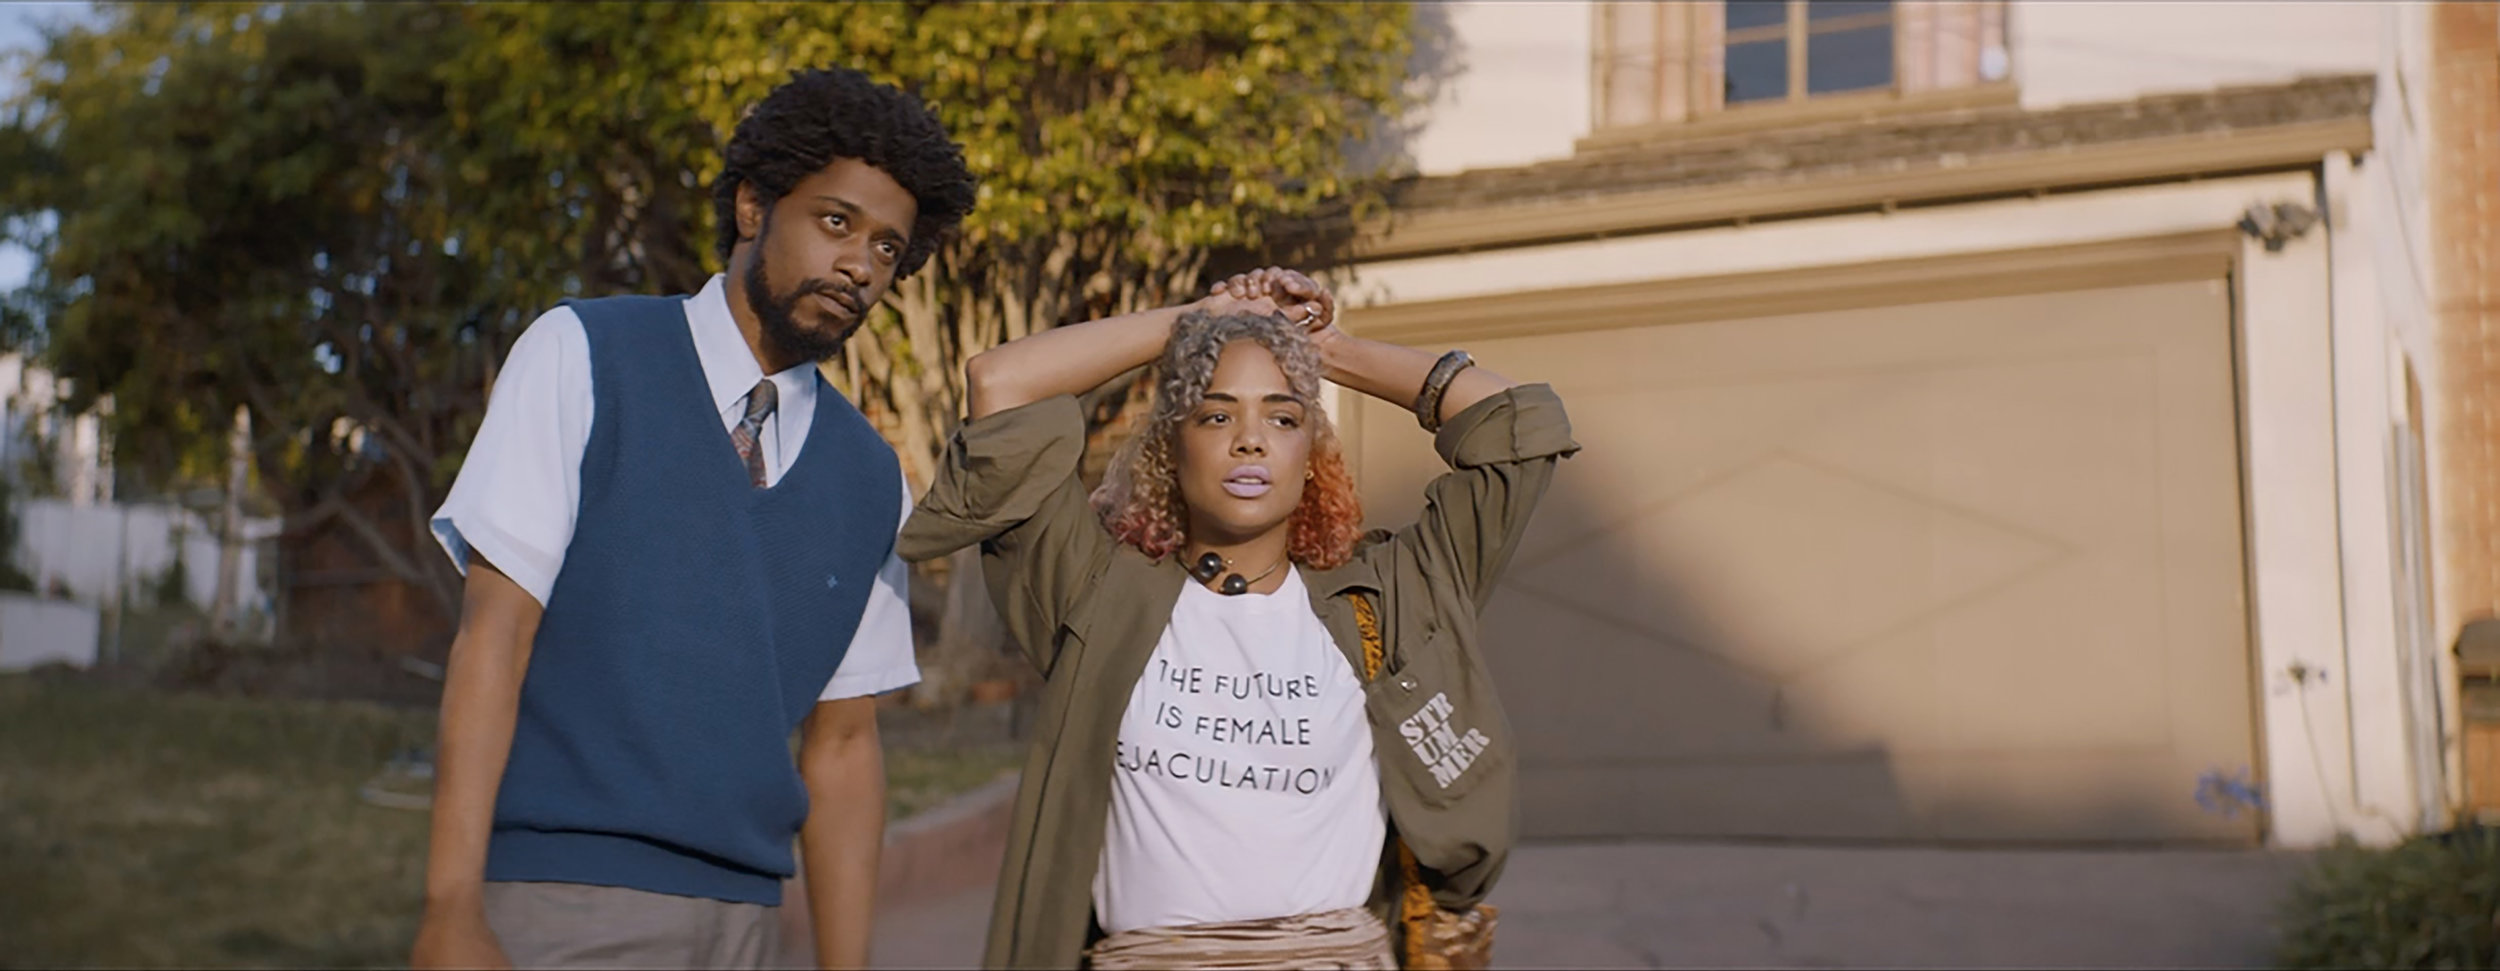 "Lakeith Stanfield plays Cassius, who takes a telemarketing job, and Tessa Thompson plays his girlfriend Detroit, a militant-feminist artist, in Boots Riley's absurdist comedy ""Sorry to Bother You."" (Photo courtesy Annapurna Pictures)"